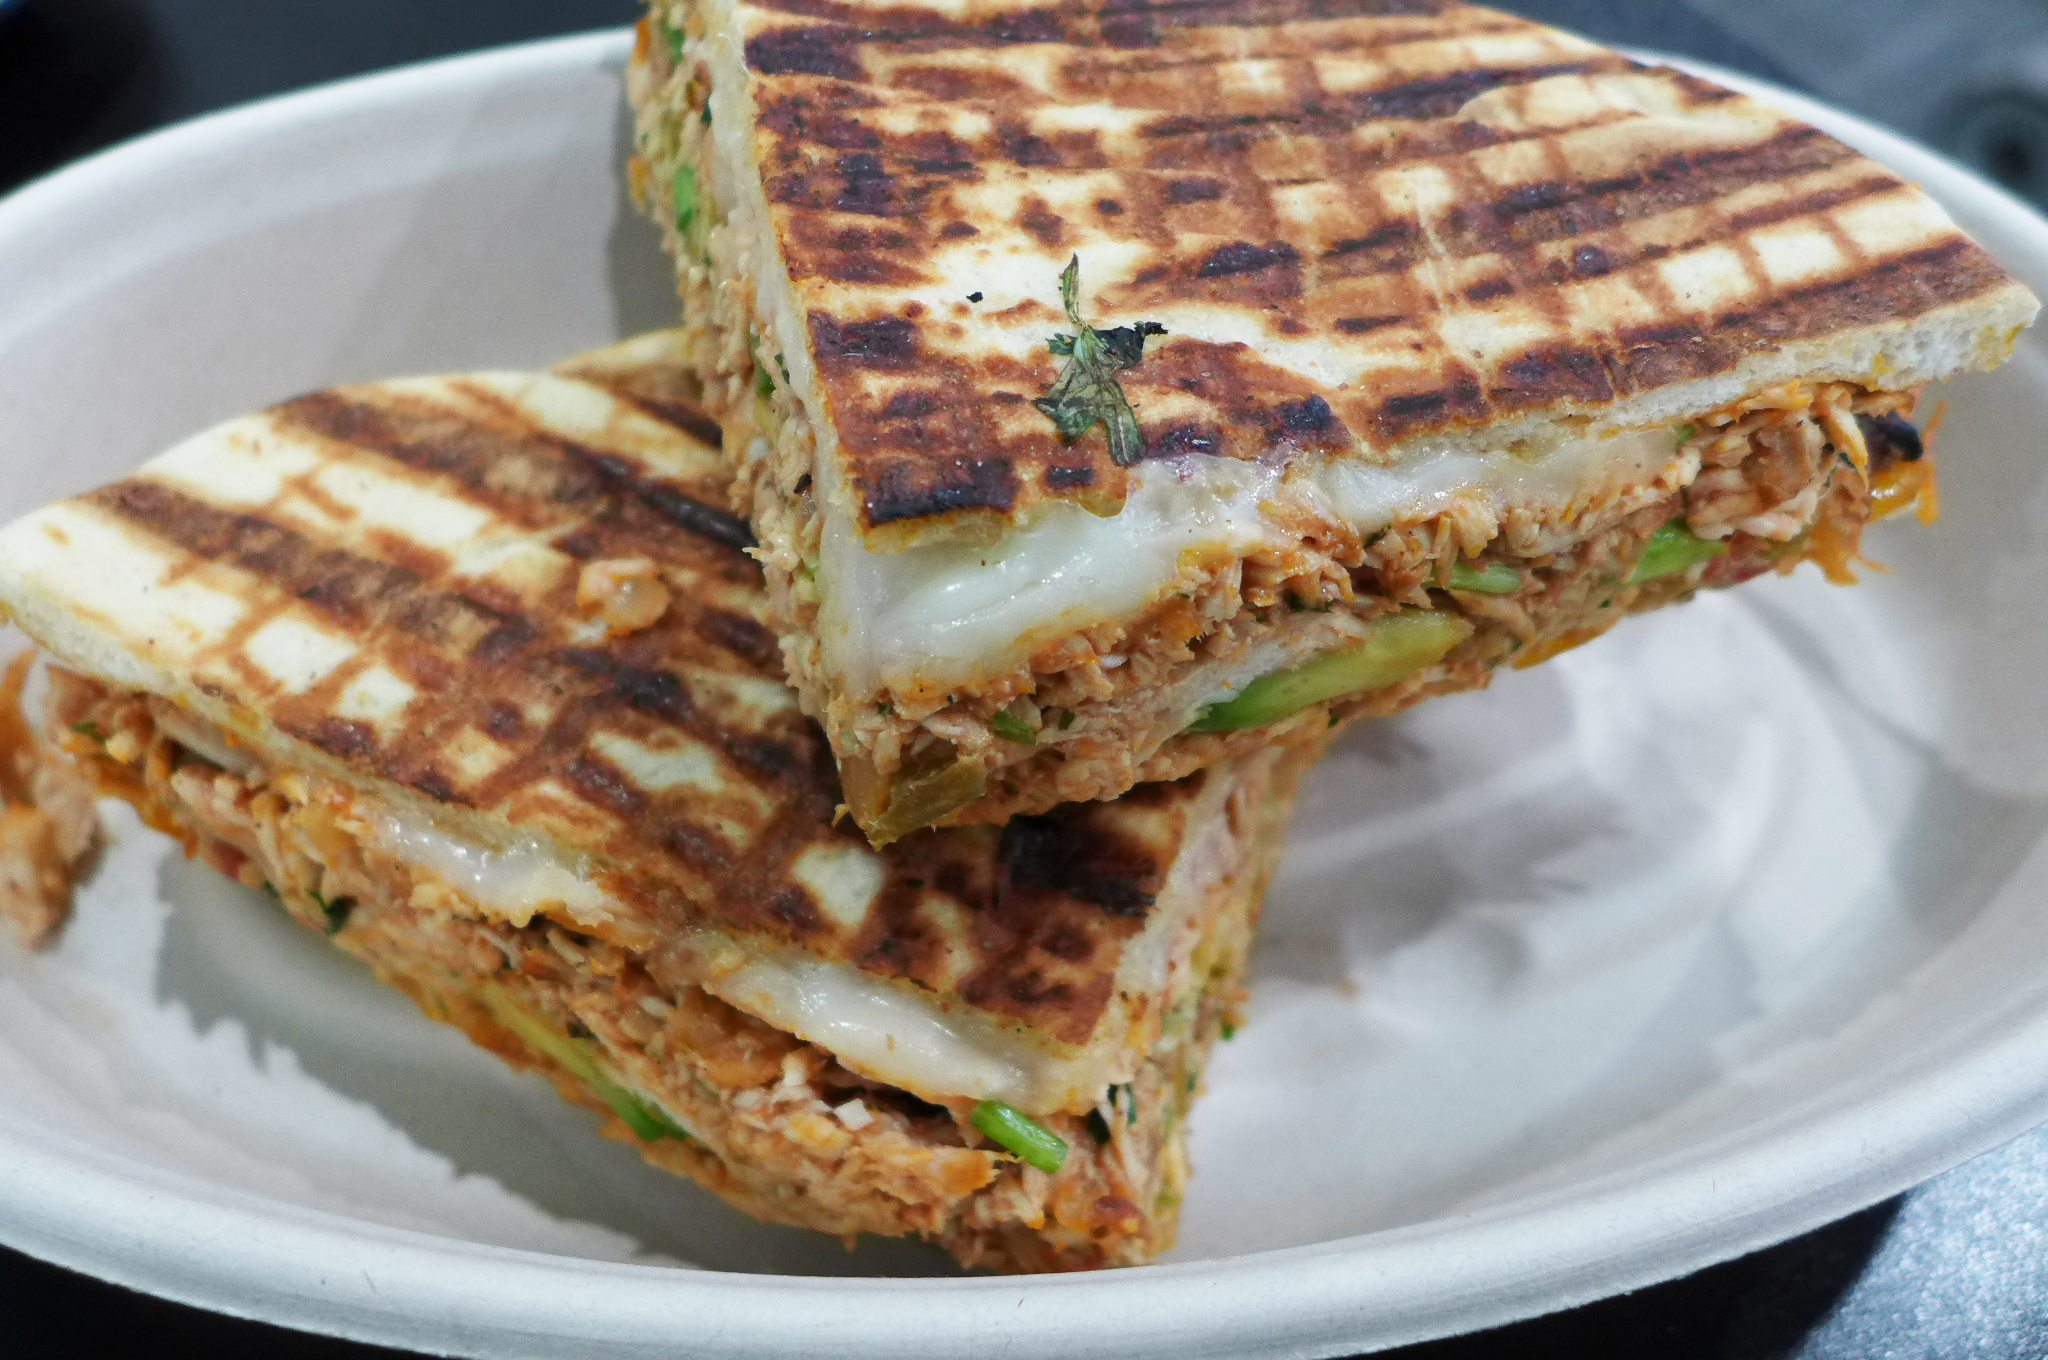 This Melty Quesadilla Panini Is a Midtown Sandwich Worth Seeking Out